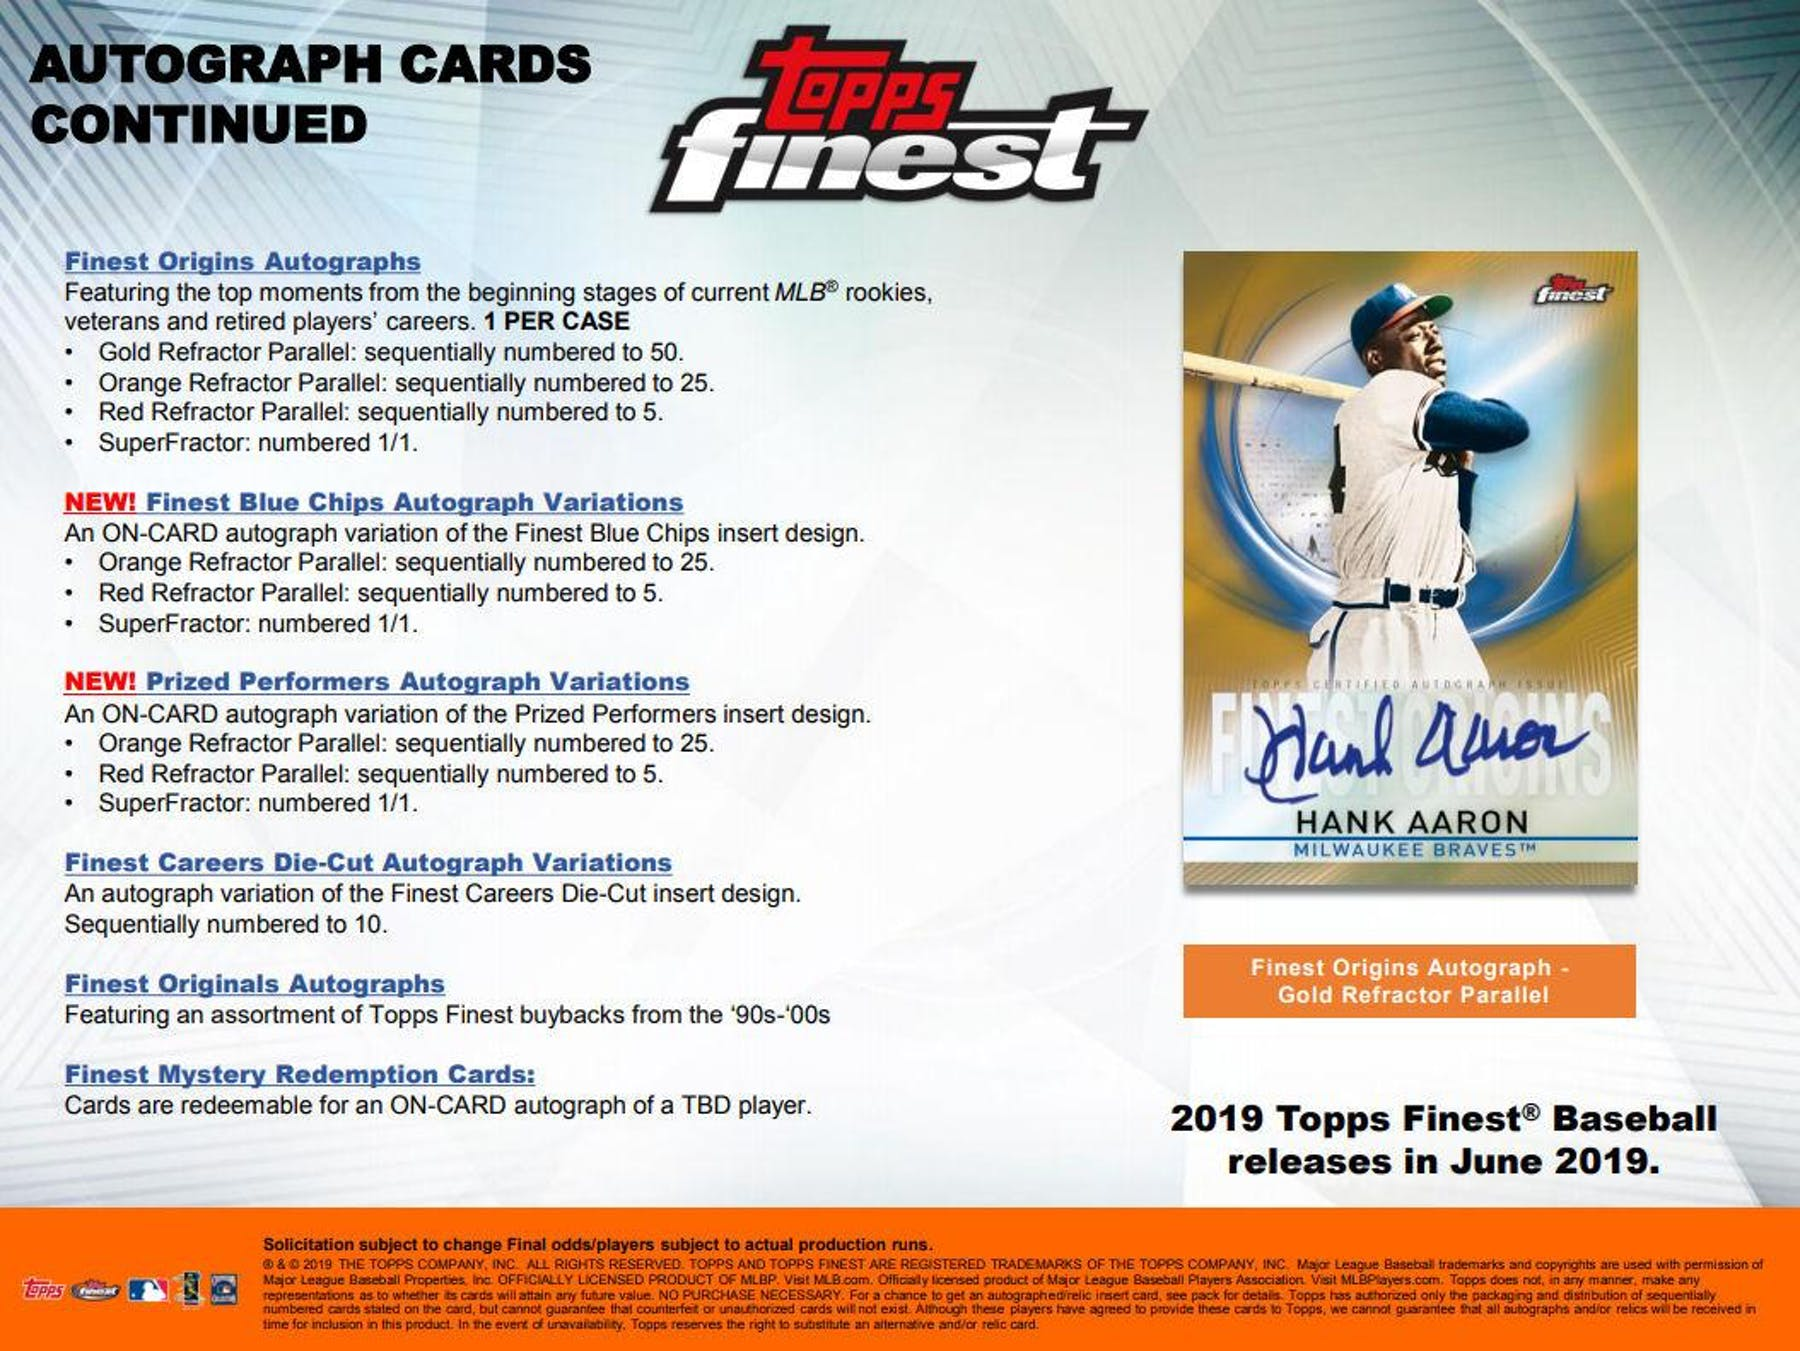 2019 Topps Finest Baseball Pack Wars Low Card Wins The Entire Box